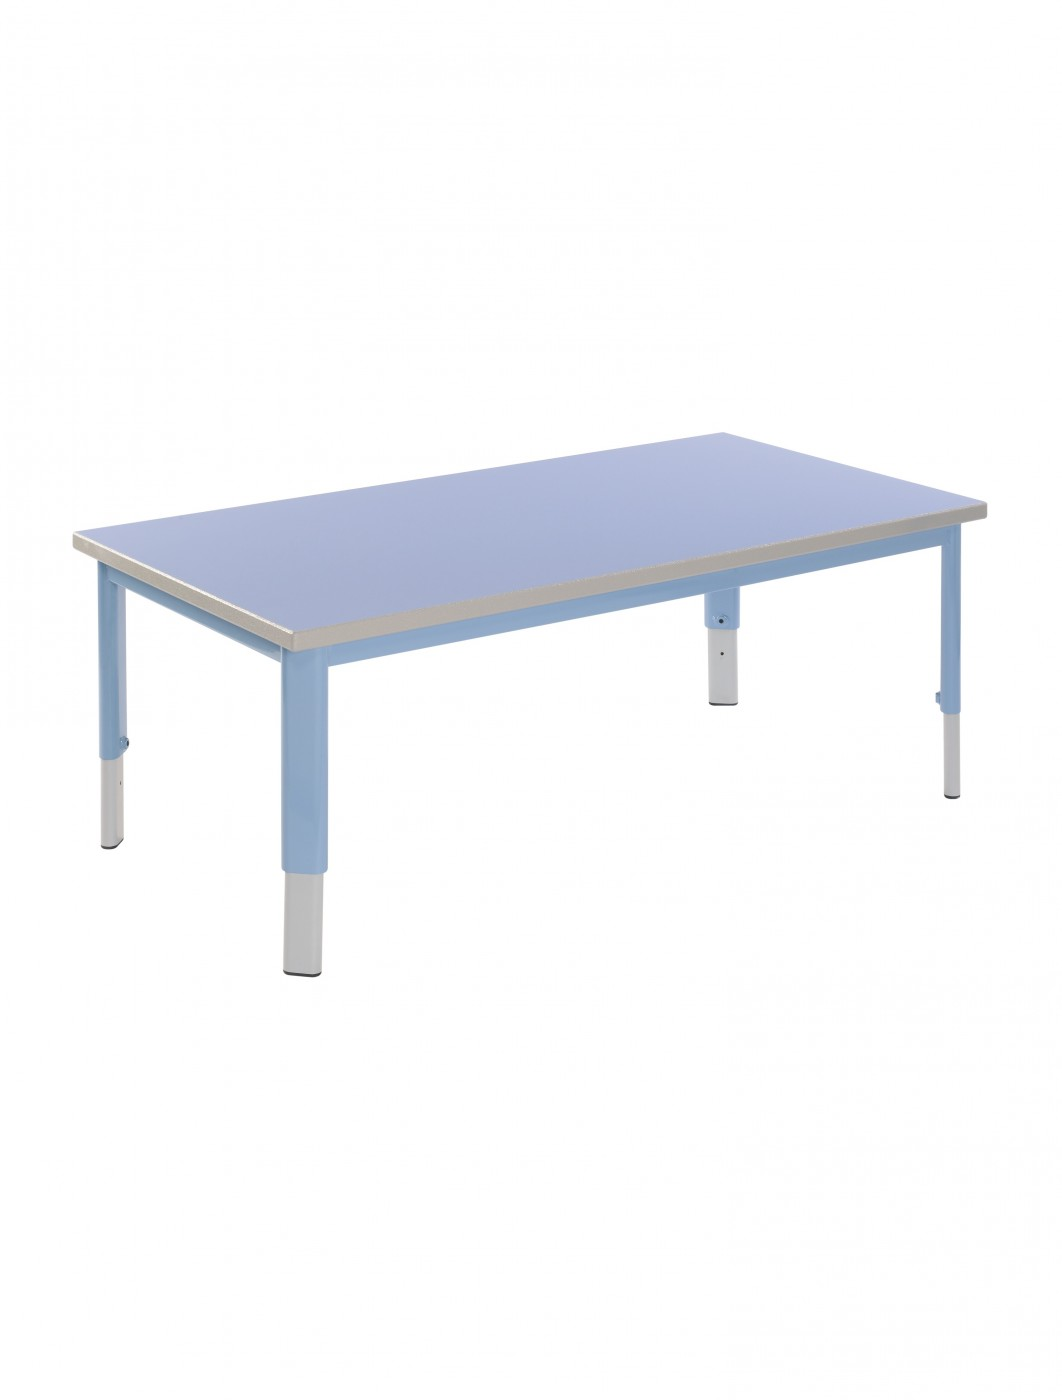 school rectangle table. ST-126-PSGY25PR Start Right Pre School Adjustable Tables - Enlarged View Rectangle Table